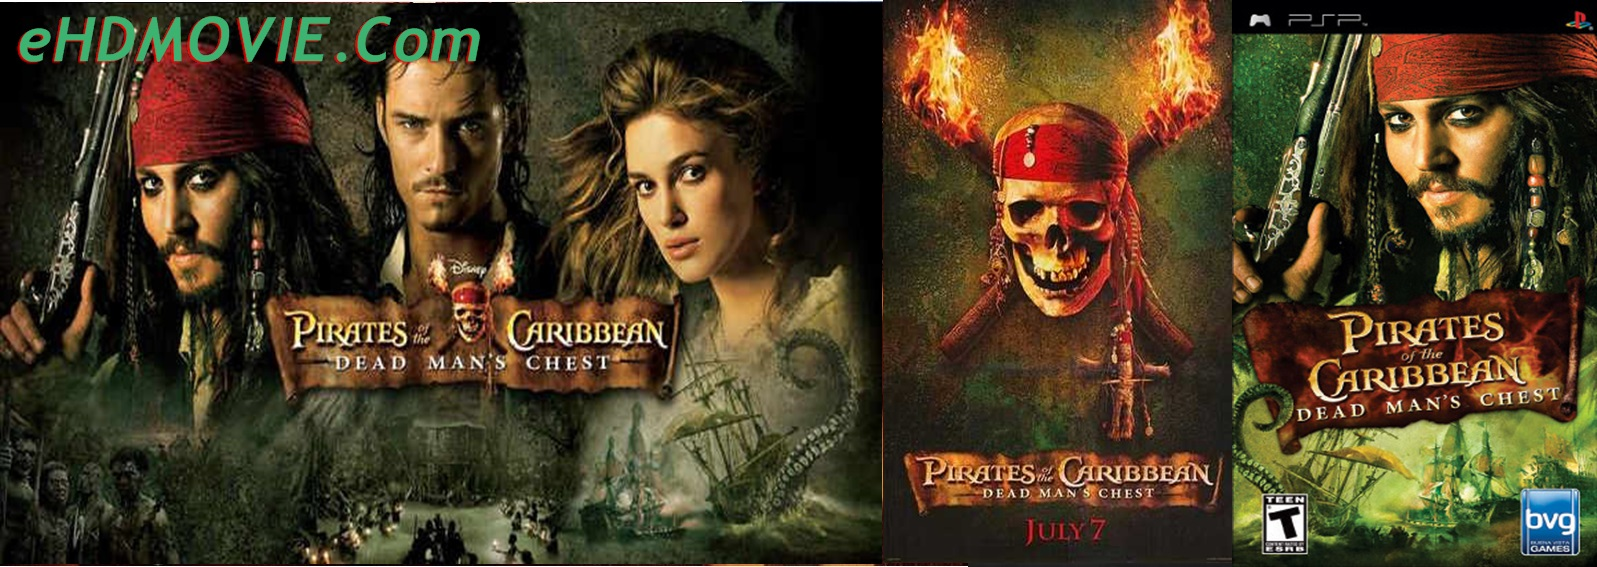 Pirates of the Caribbean: Dead Man's Chest 2006 Full Movie Dual Audio [Hindi – English] 720p – 480p ORG BRRip 400MB – 1.4GB ESubs Free Download